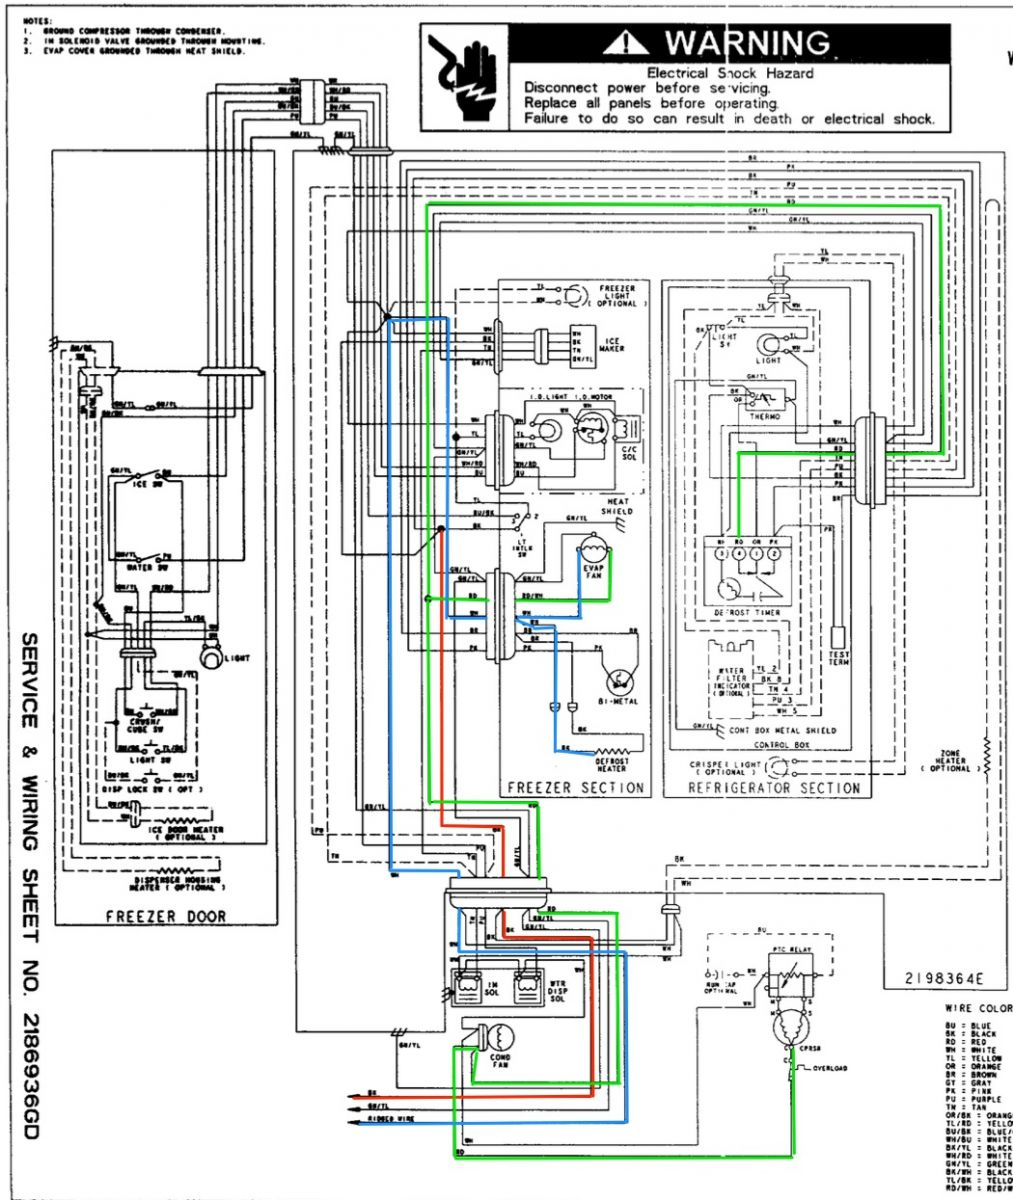 Whirlpool ED25RFXFW01 Refrigerator Wiring Diagram - The Appliantology  Gallery - Appliantology.org - A Master Samurai Tech Appliance Repair Dojo | Whirlpool Refrigerator Wiring Diagram |  | Appliantology